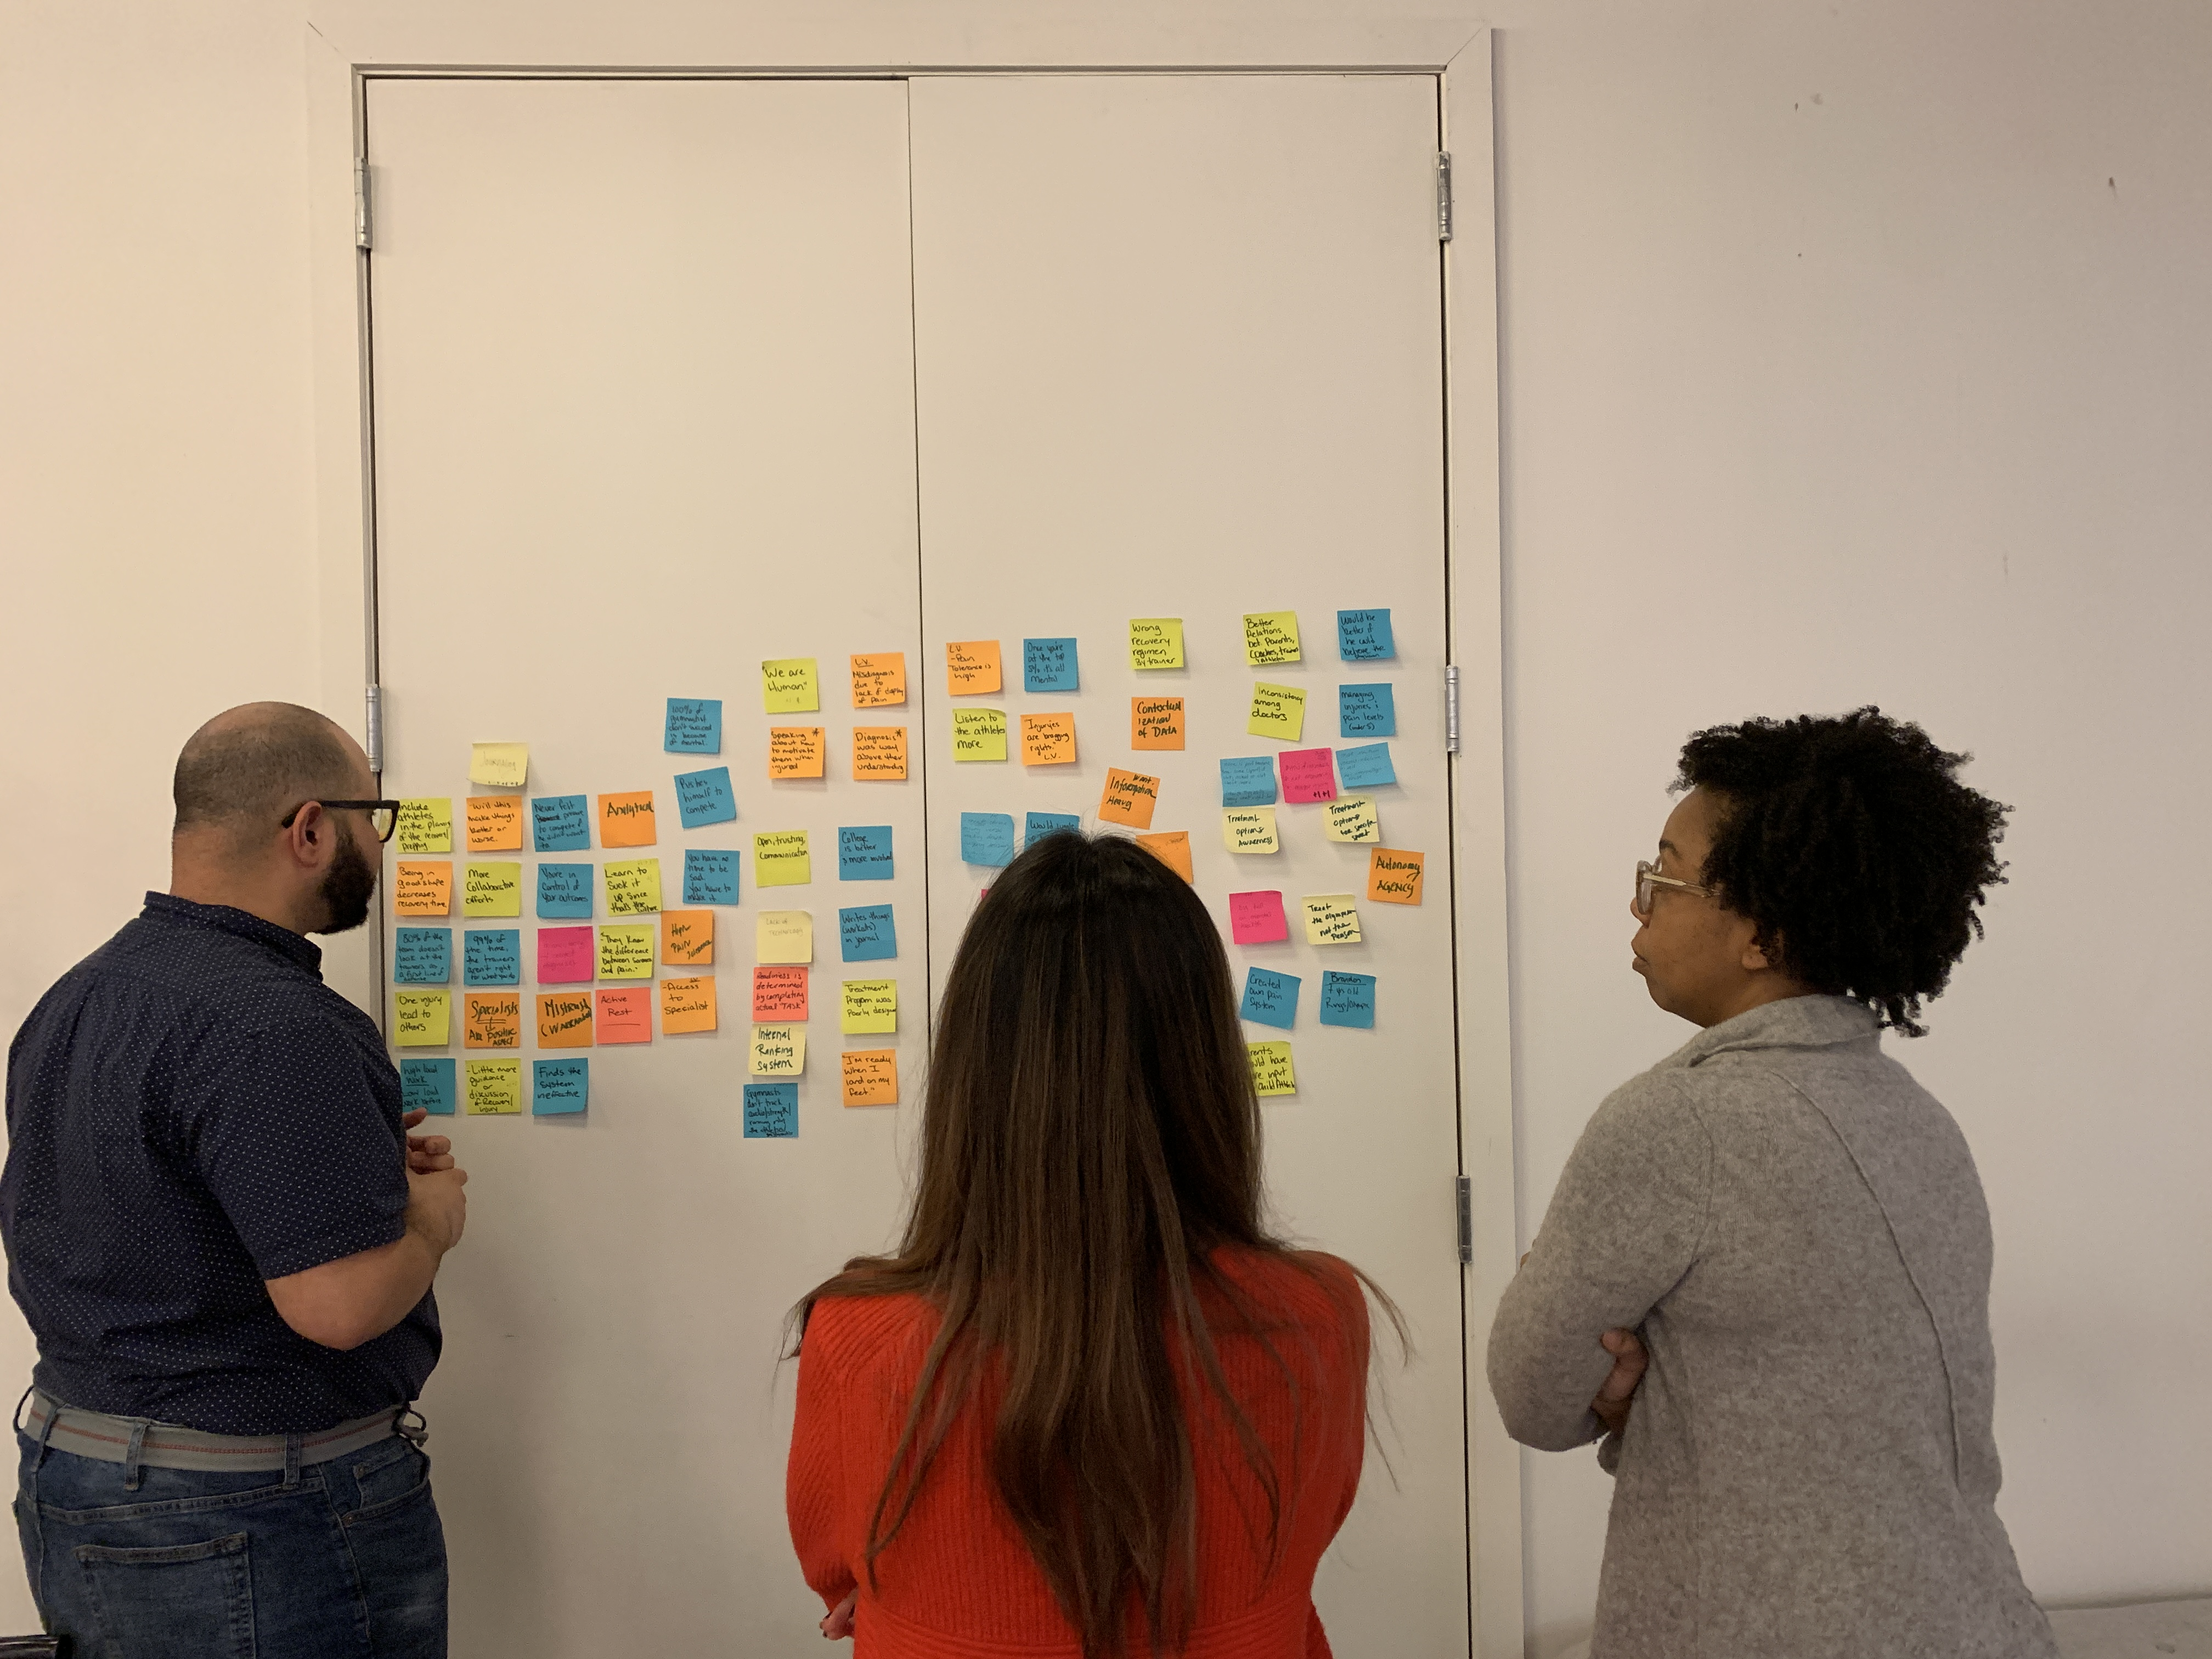 Group Affinity Mapping